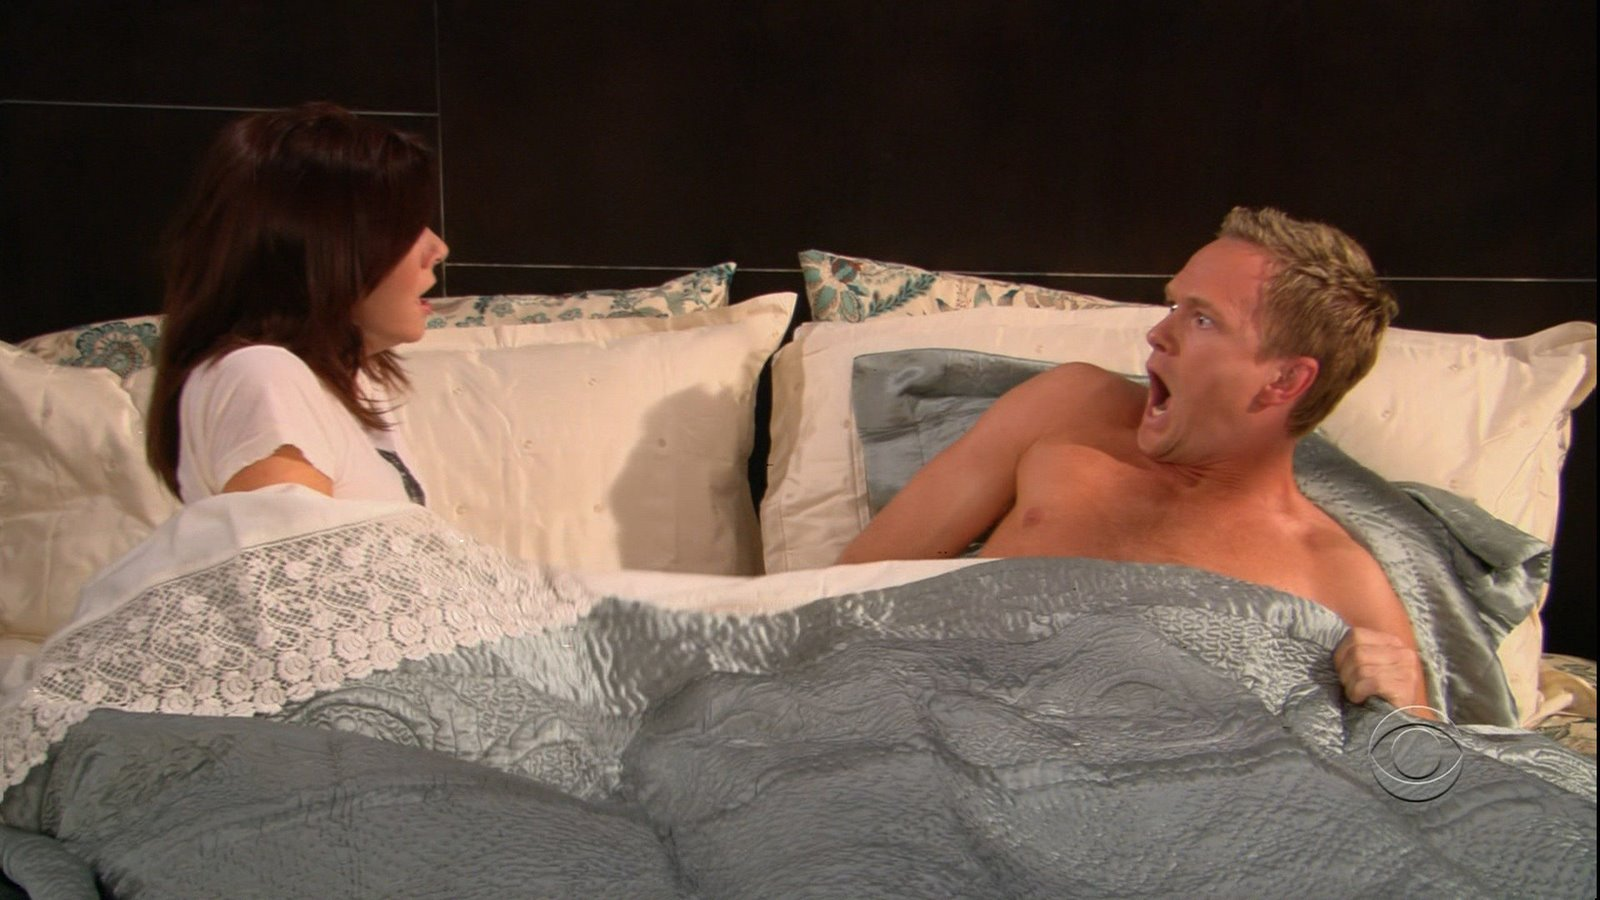 Barney---Lily---2x05-how-i-met-your-mother-719710_1600_900